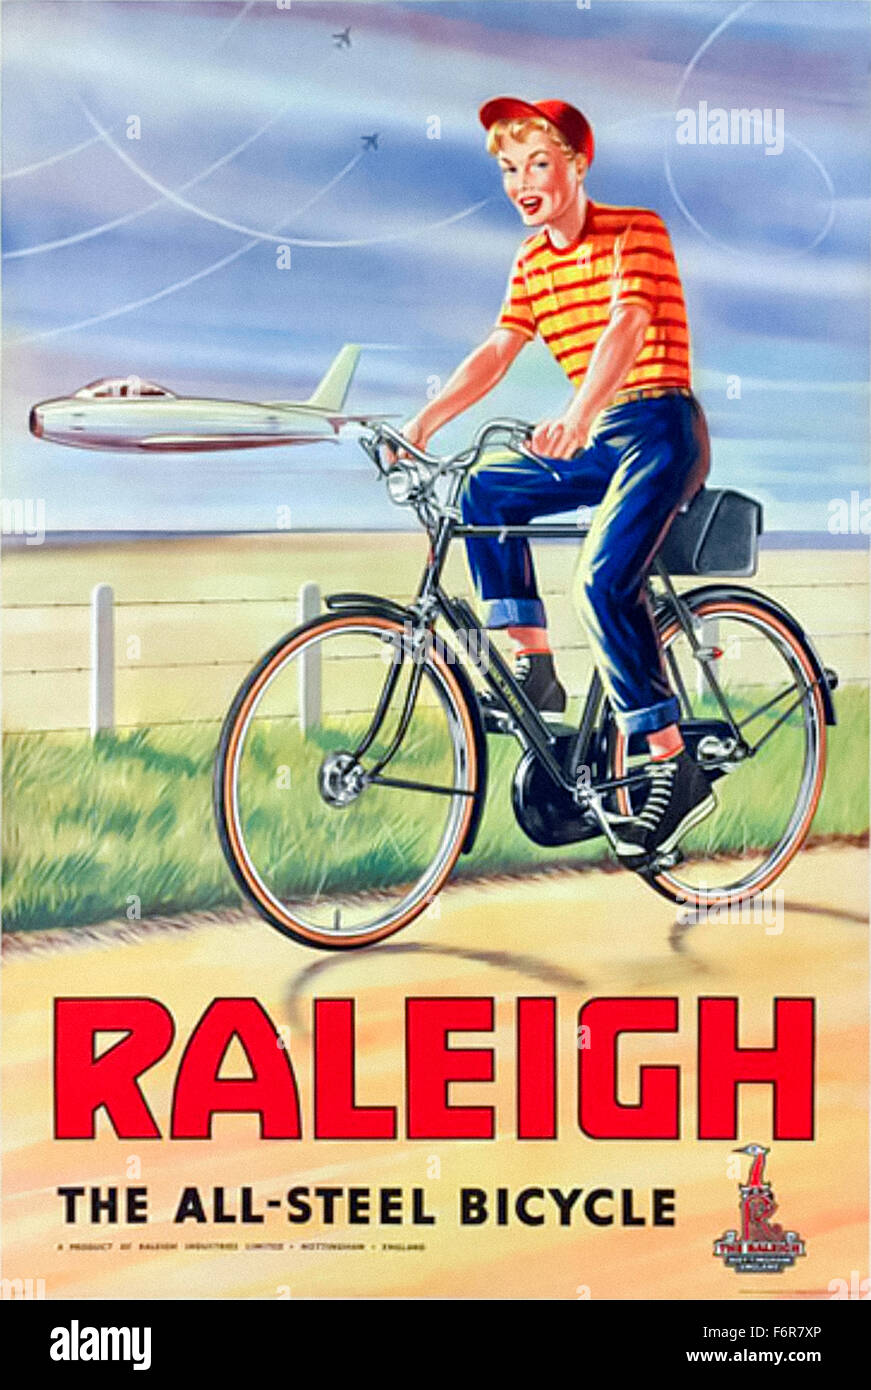 Poster design 1950 - Vintage 1950s Advertising Poster For Raleigh Bicycles Featuring Teenager Riding A Bicycle With Jet Planes